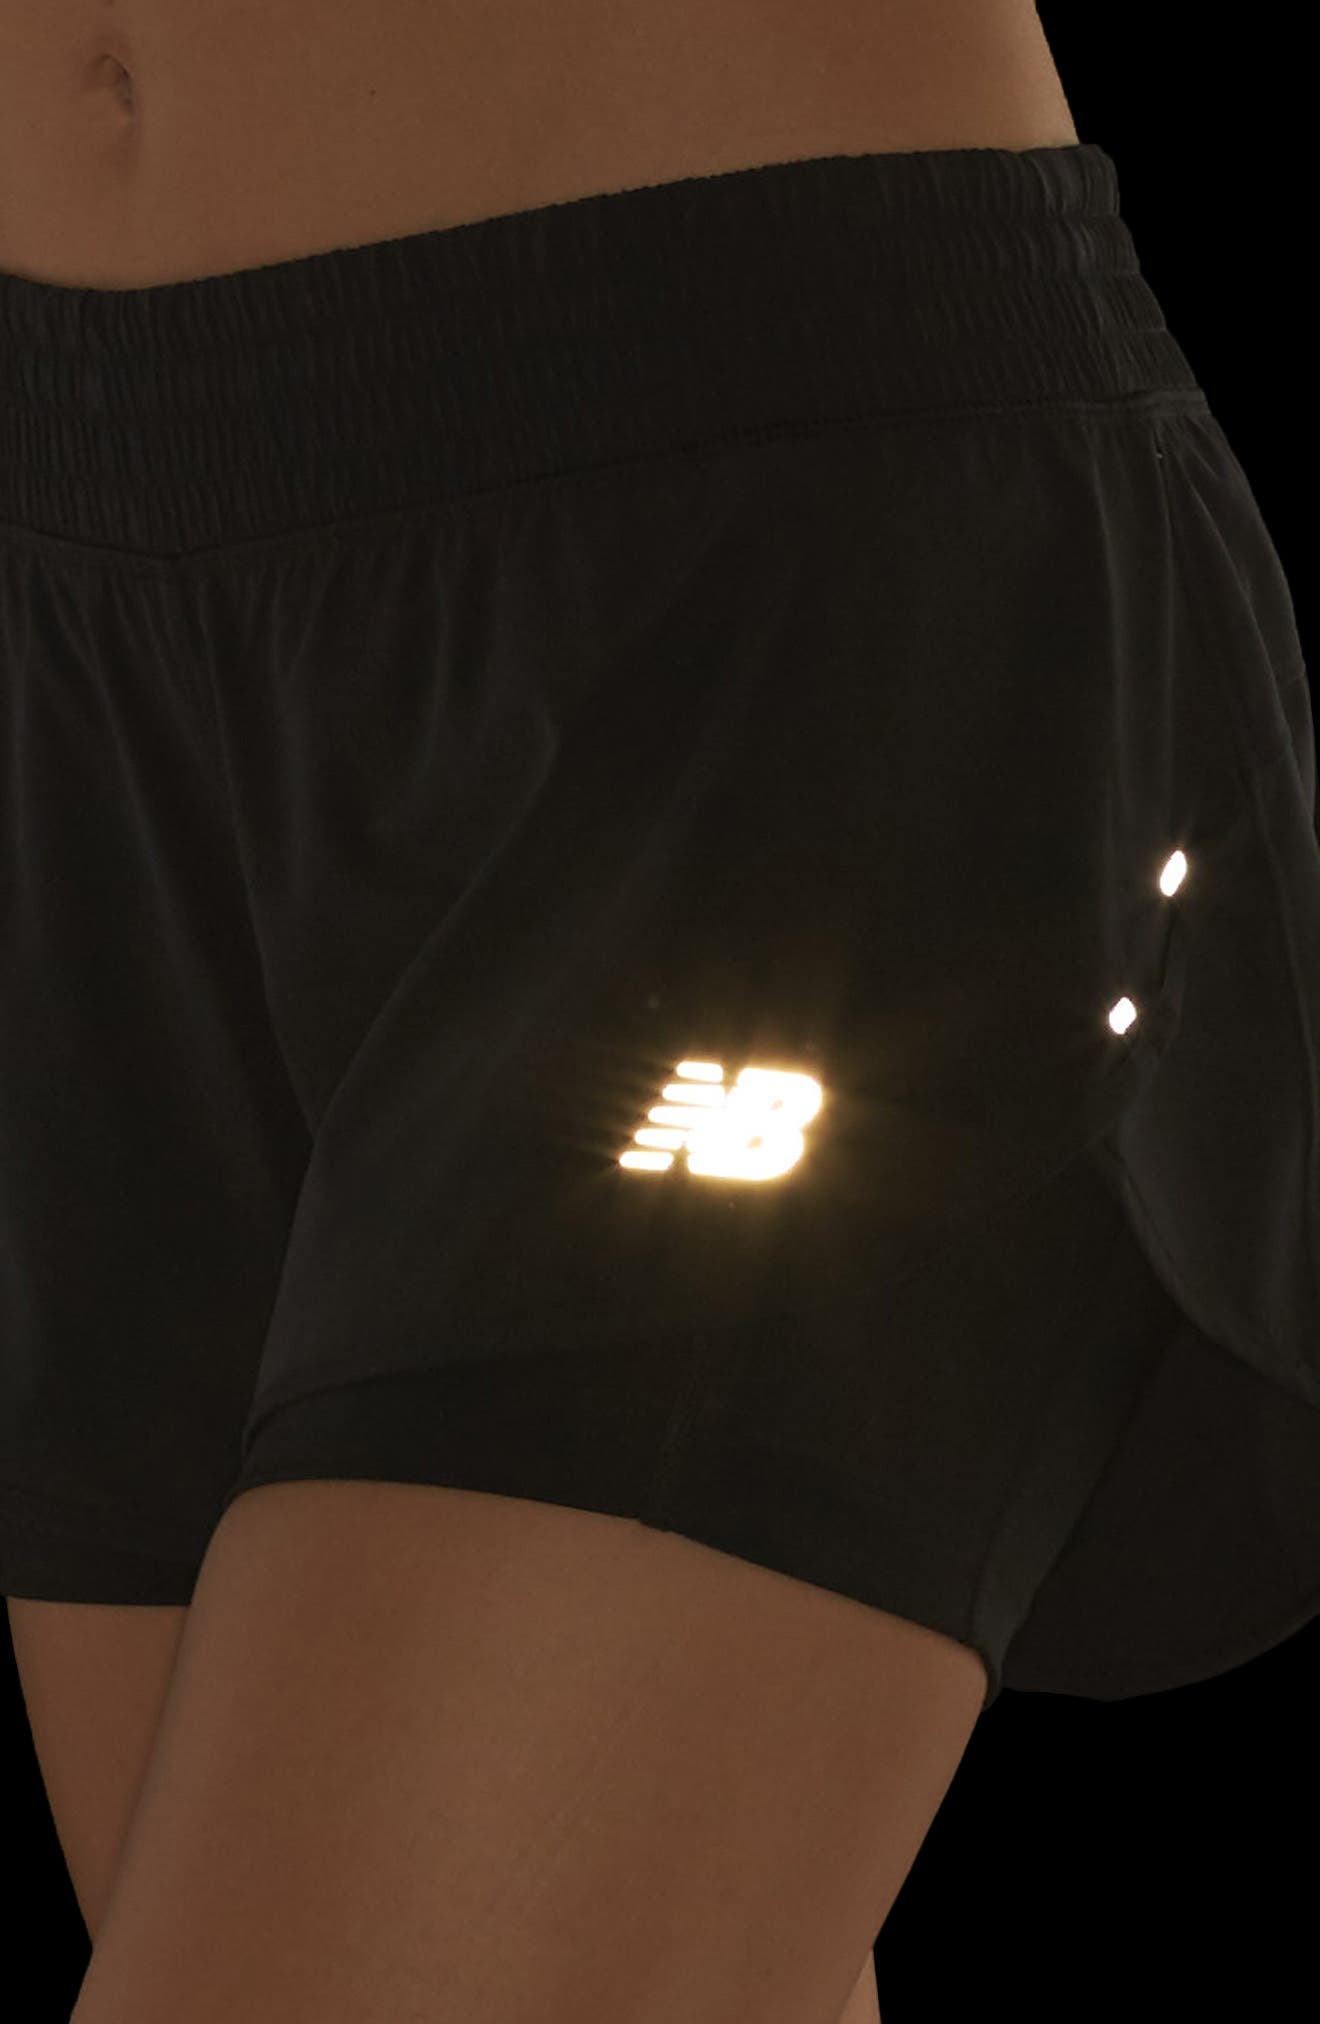 Impact Layered Running Shorts,                             Alternate thumbnail 4, color,                             001